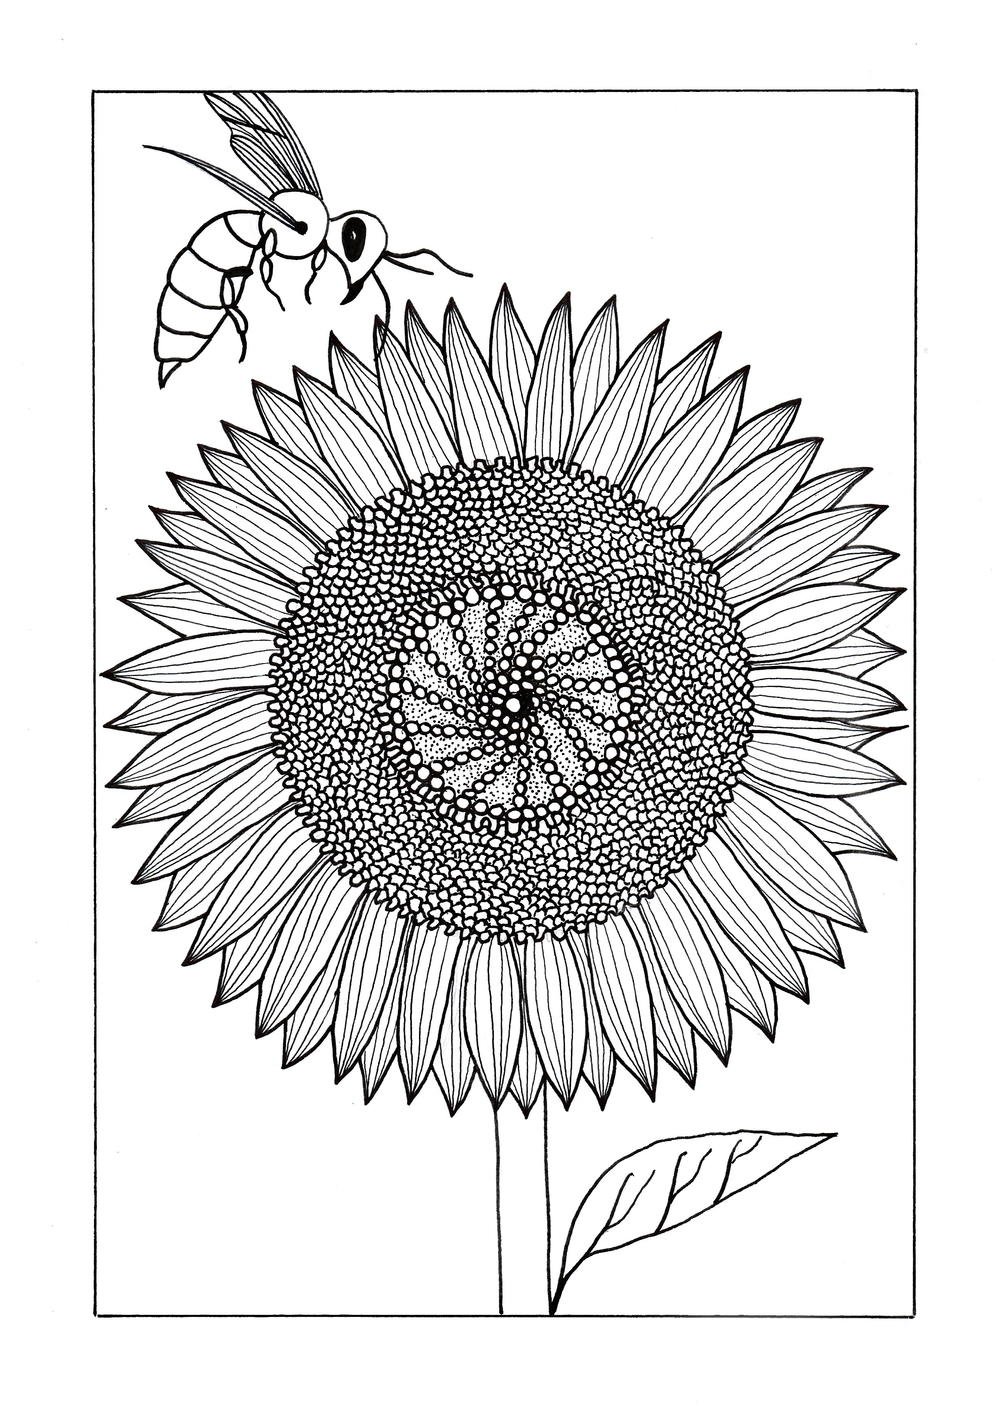 Vividly Intricate Sunflower Adult Coloring Page ...